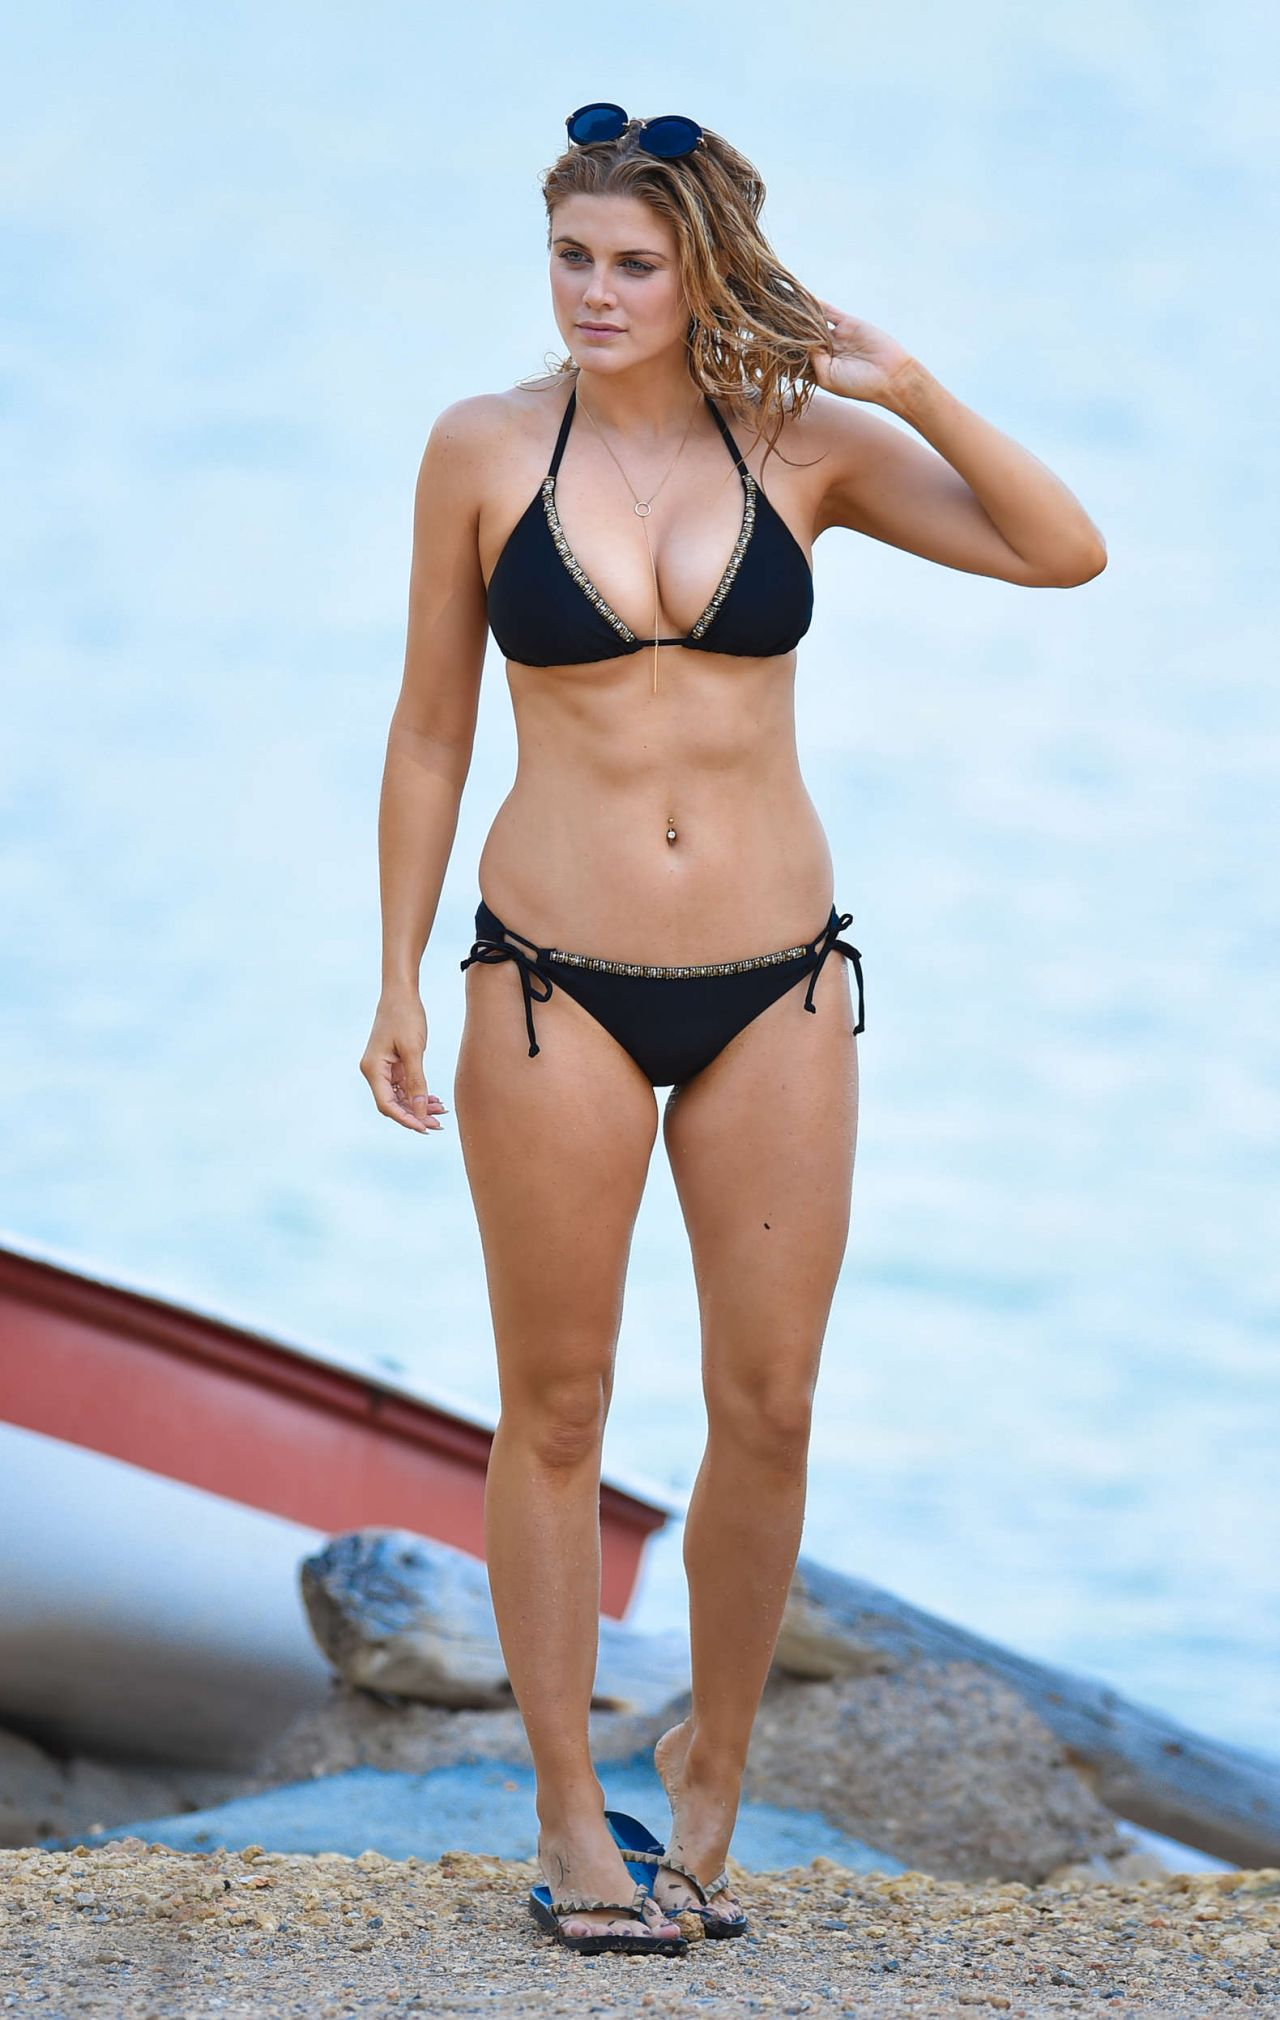 Ashley James In Black Bikini At A Beach In Bali 122016-4032